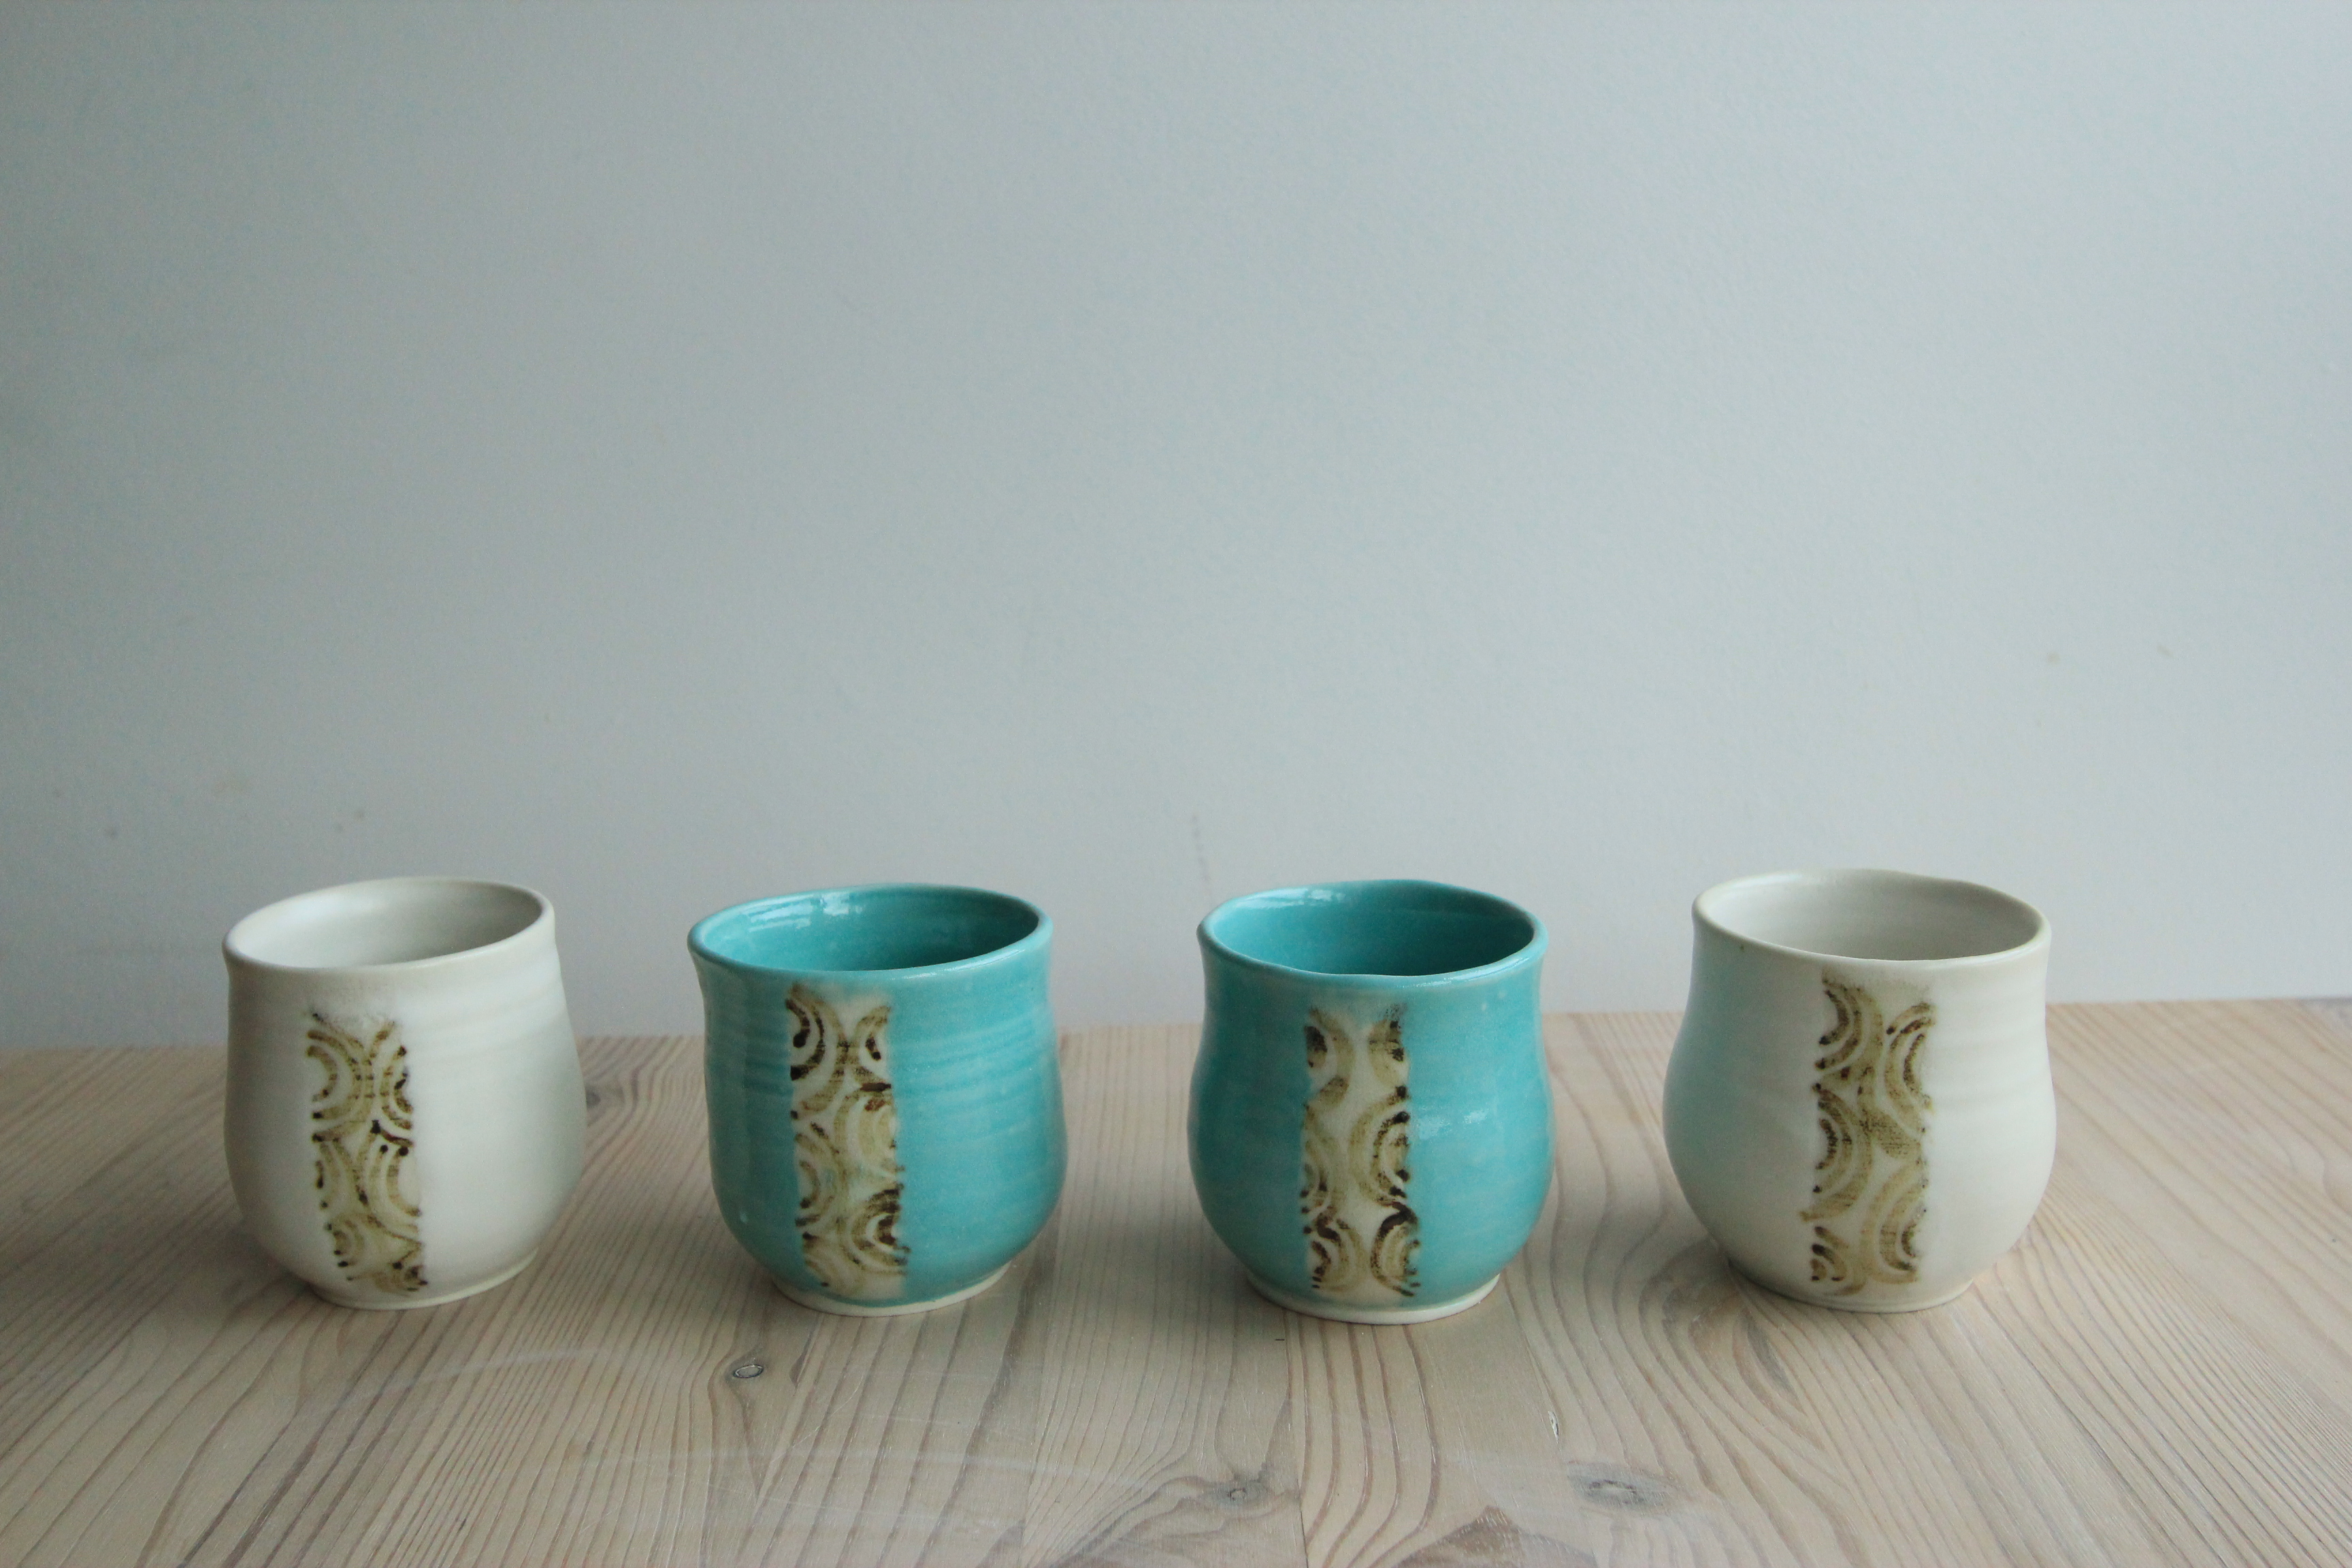 Turquoise and White teacups